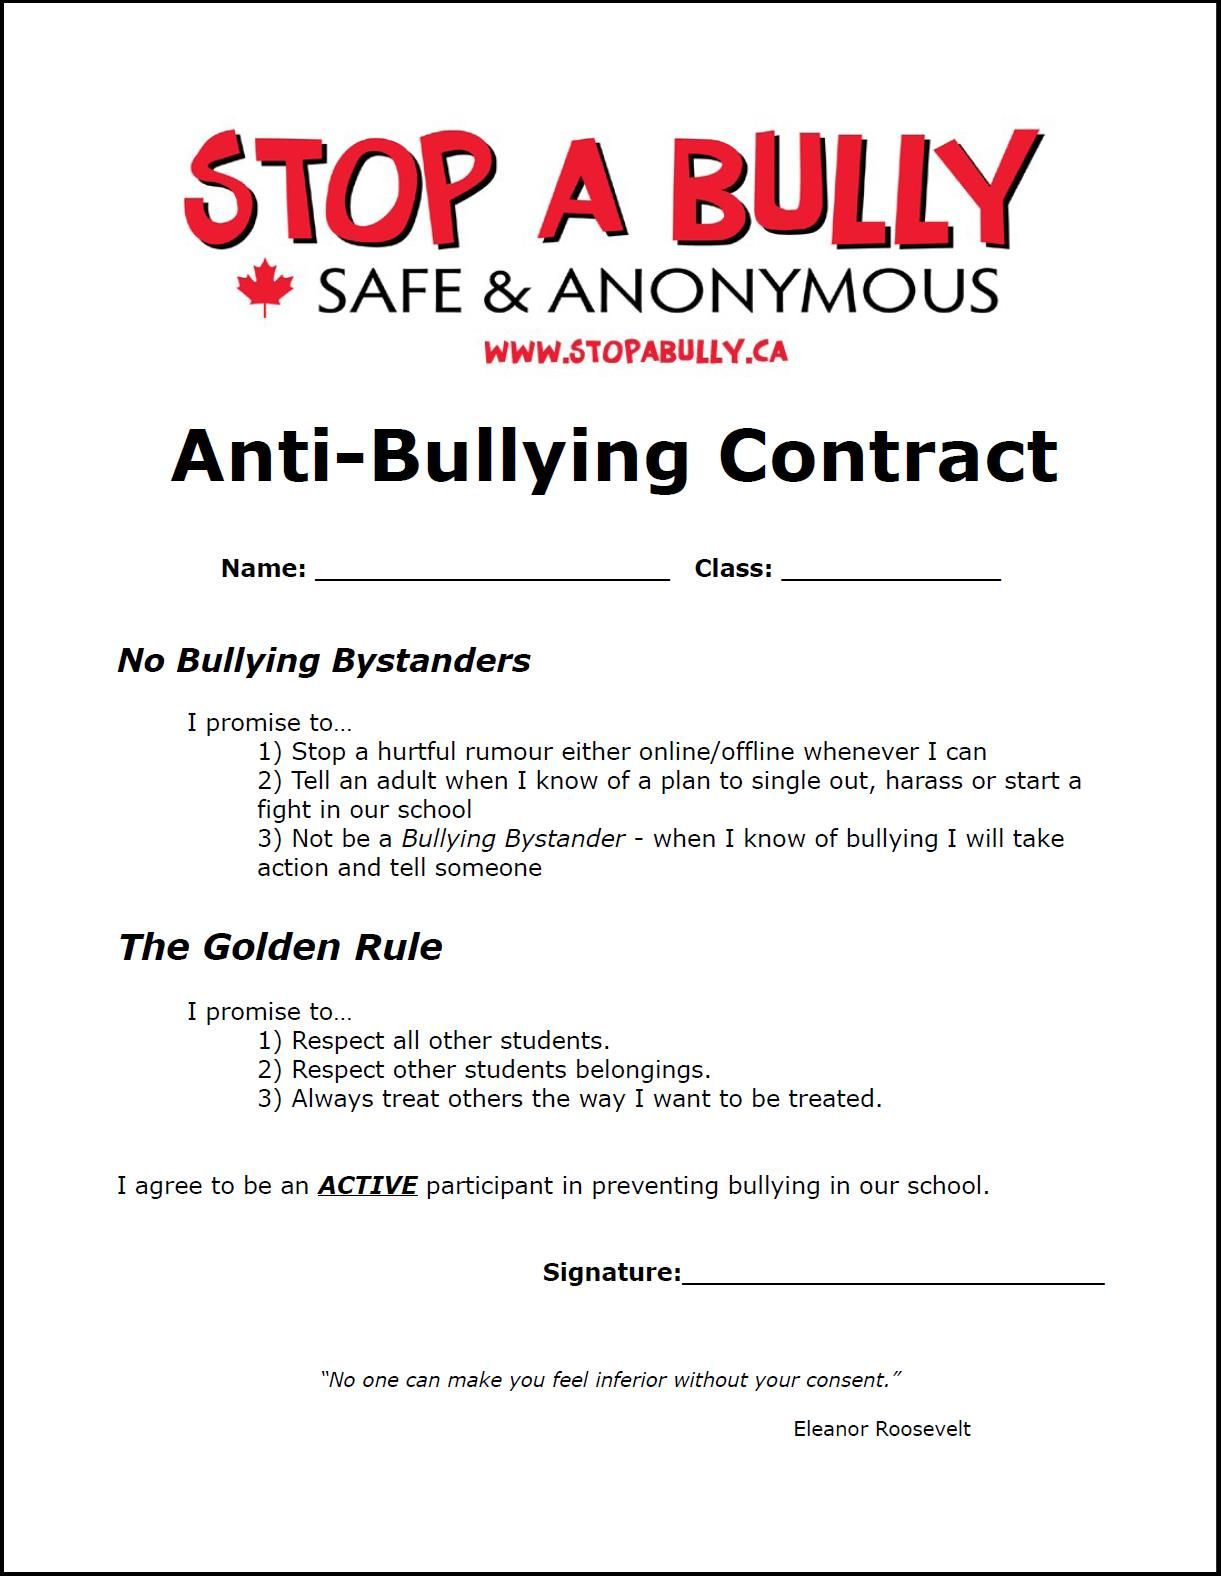 An Anti Bullying Contract Can Increase Awareness And Motivation Bullies To Change Their Behavior